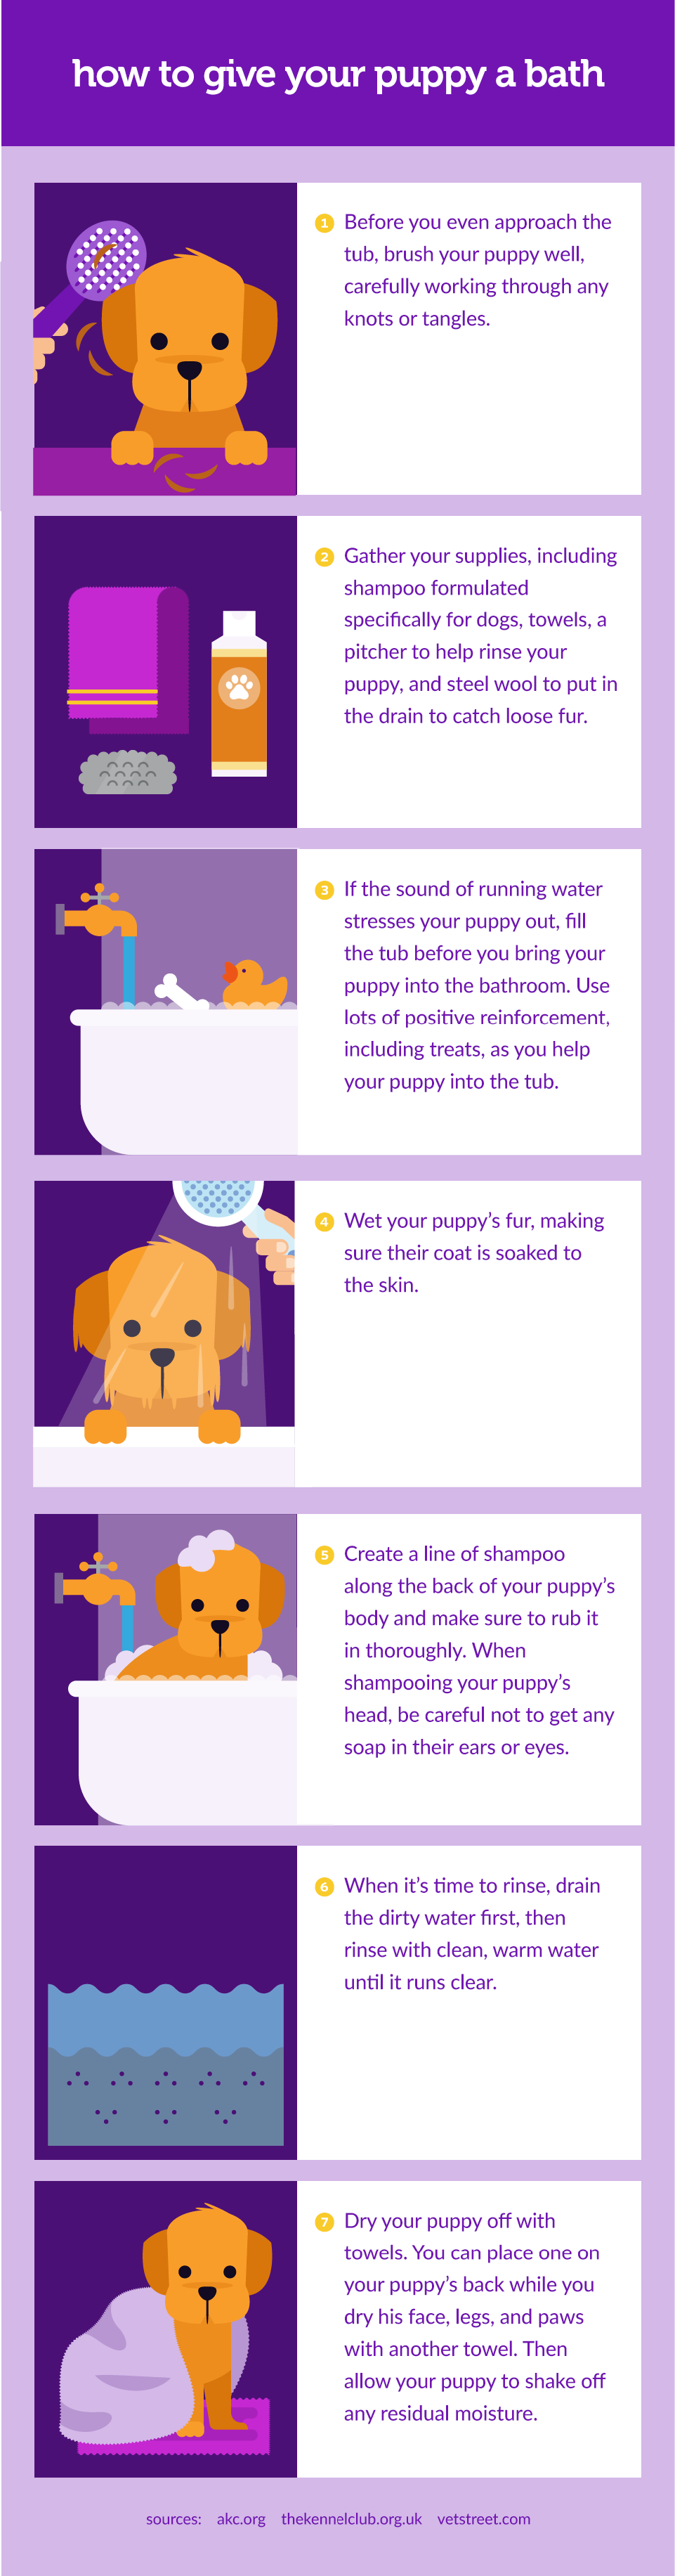 How To Give Your Puppy A Bath